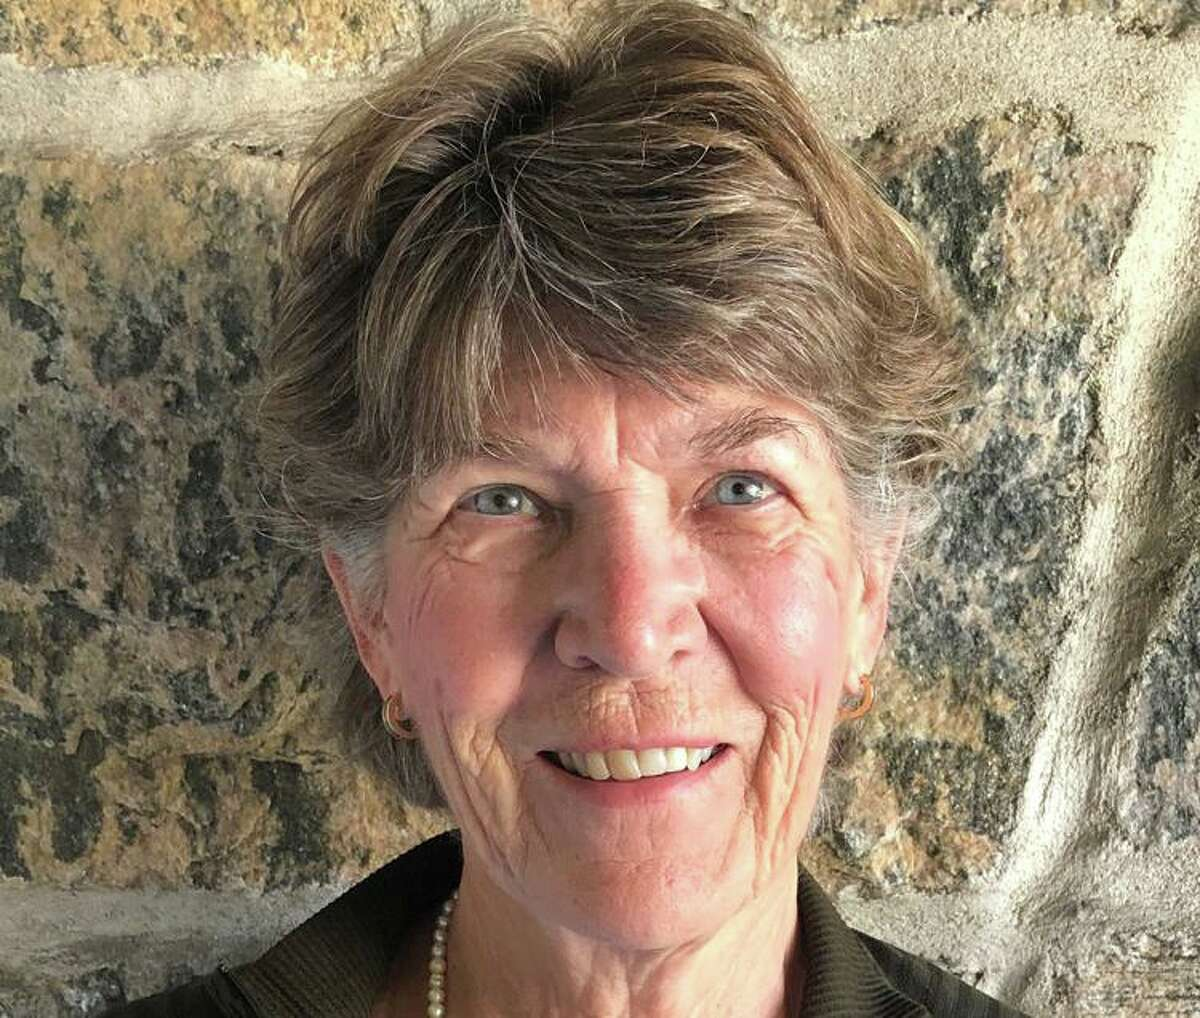 Lile Gibbons of Greenwich has joined the board of trustees at her alma mater, Smith College.